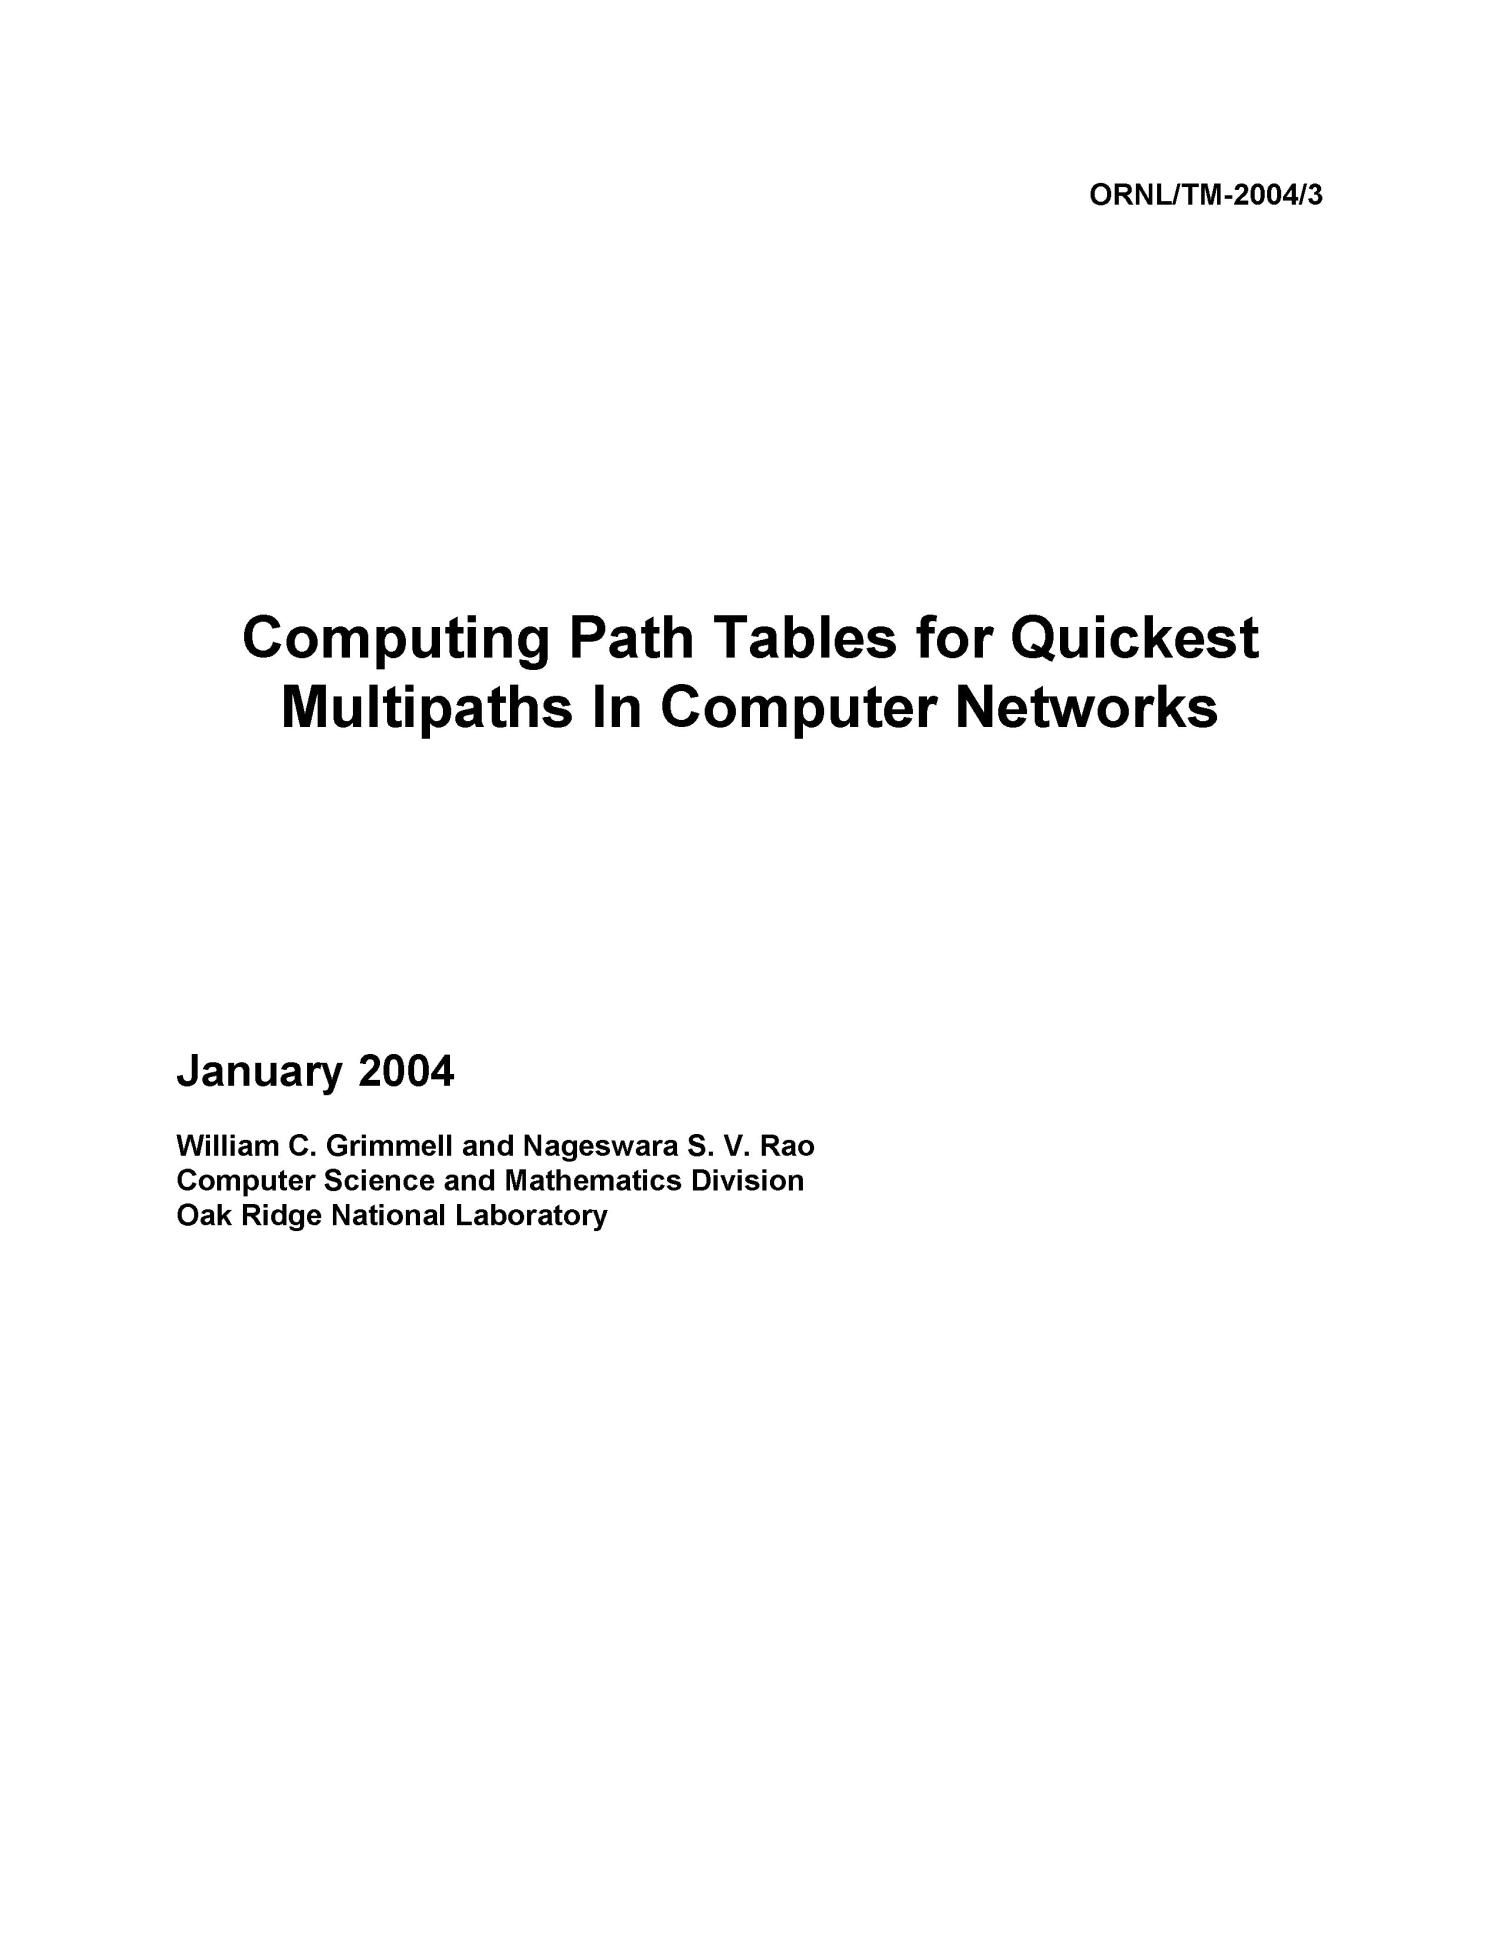 Computing Path Tables for Quickest Multipaths In Computer Networks                                                                                                      [Sequence #]: 1 of 85